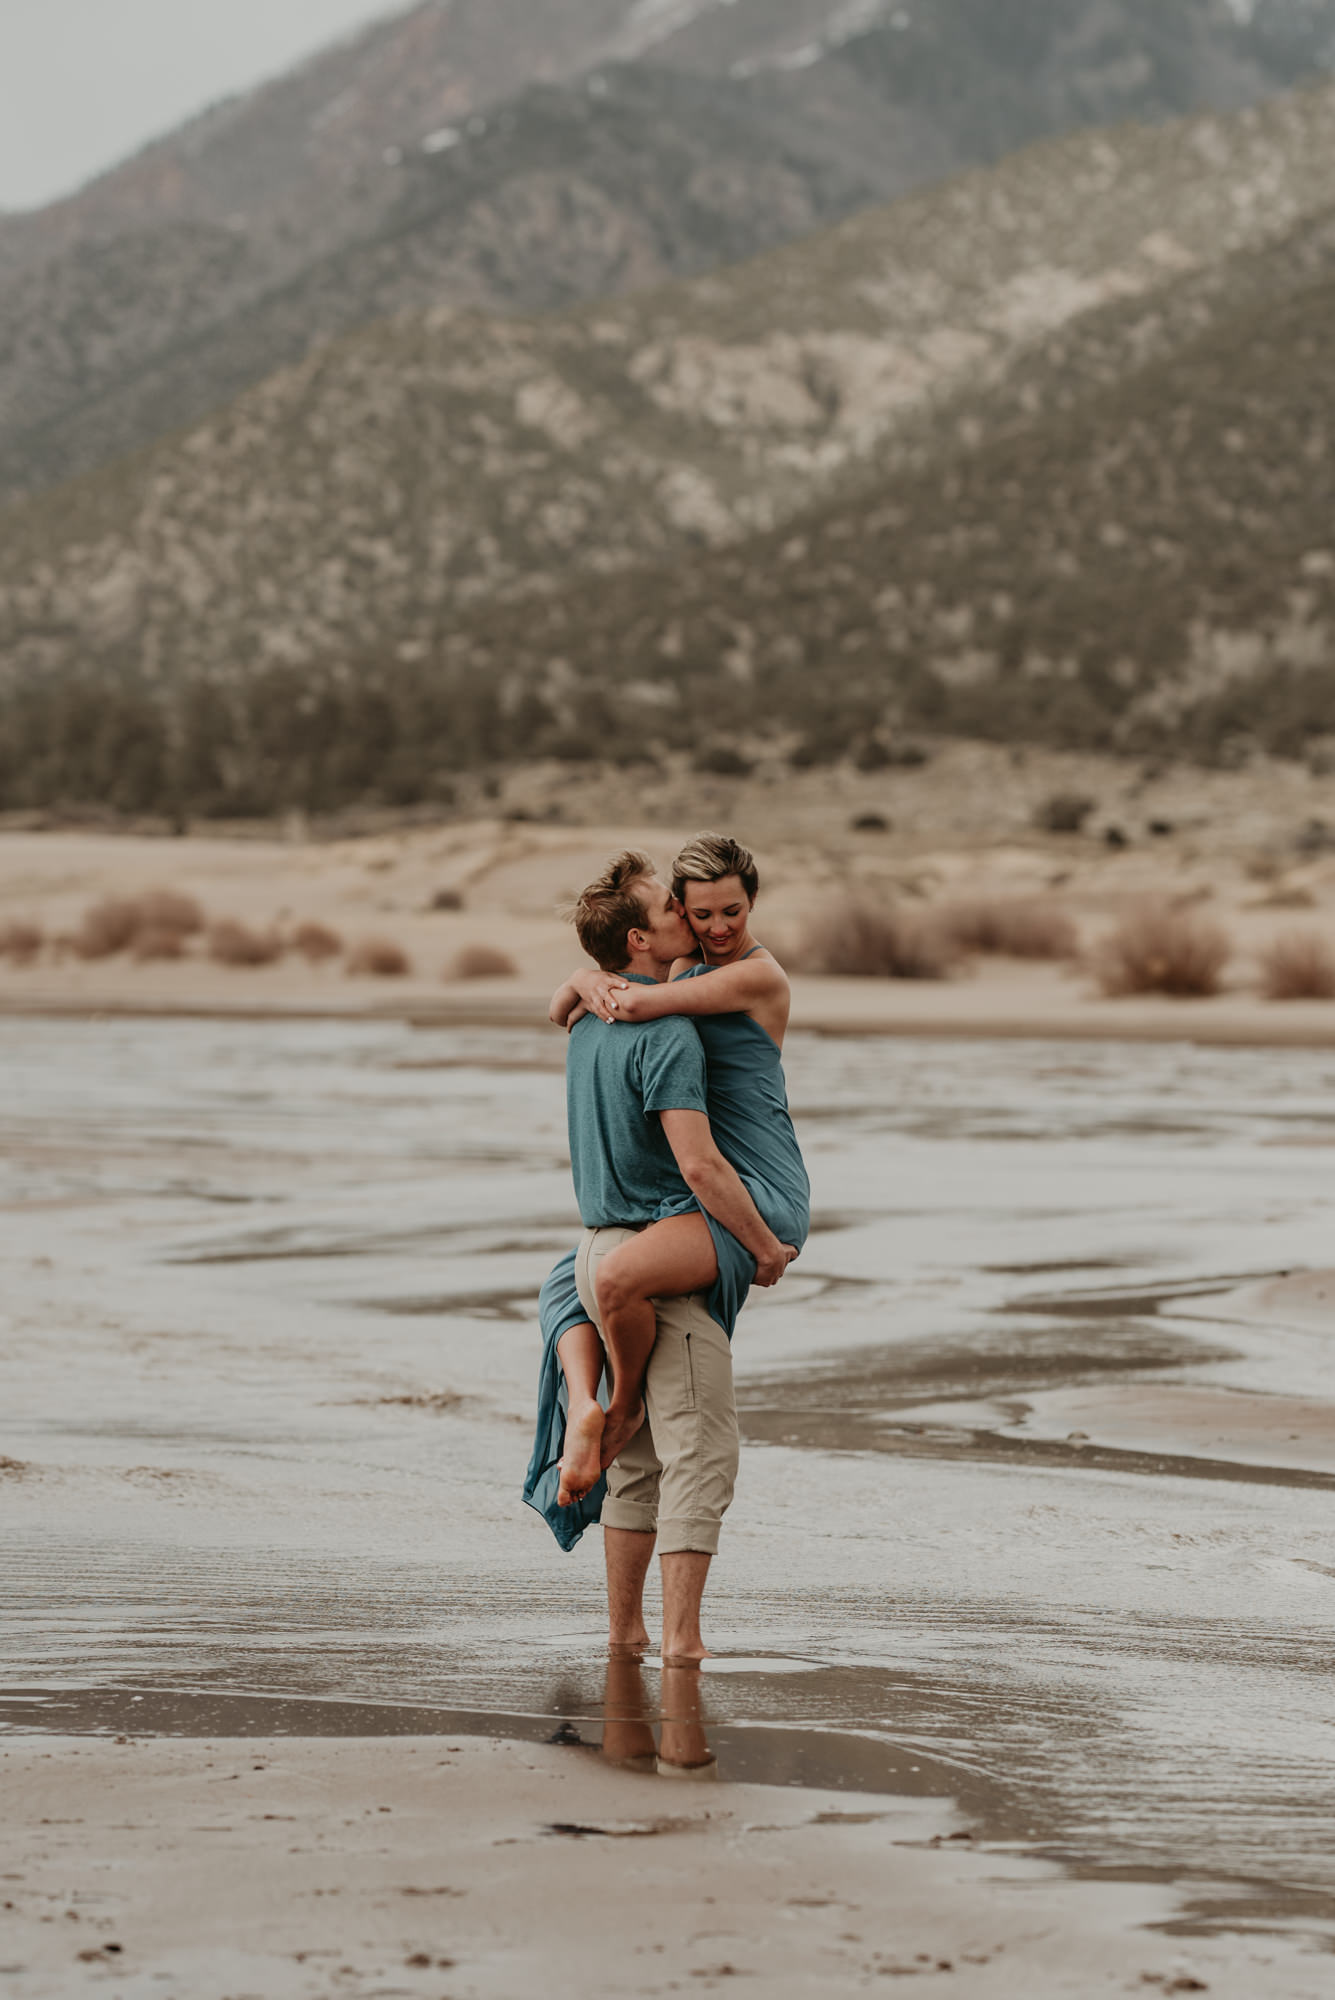 A romantic summer engagement photo showing the Sangre de Cristo Range in the background.